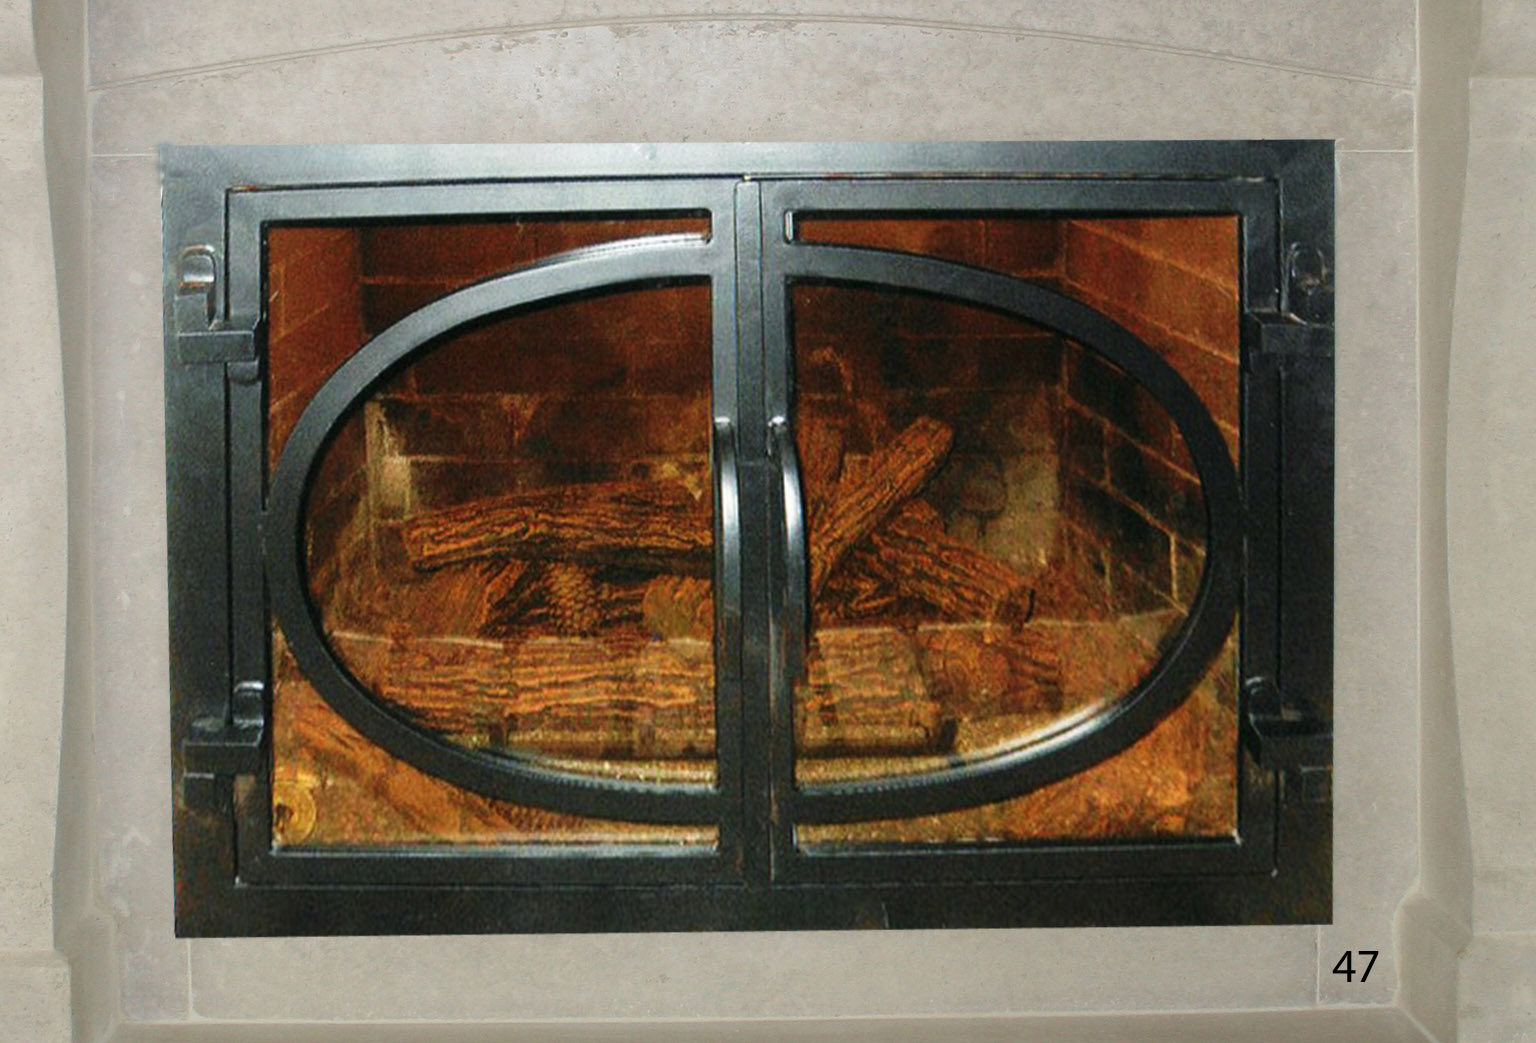 Fireplace Door 47